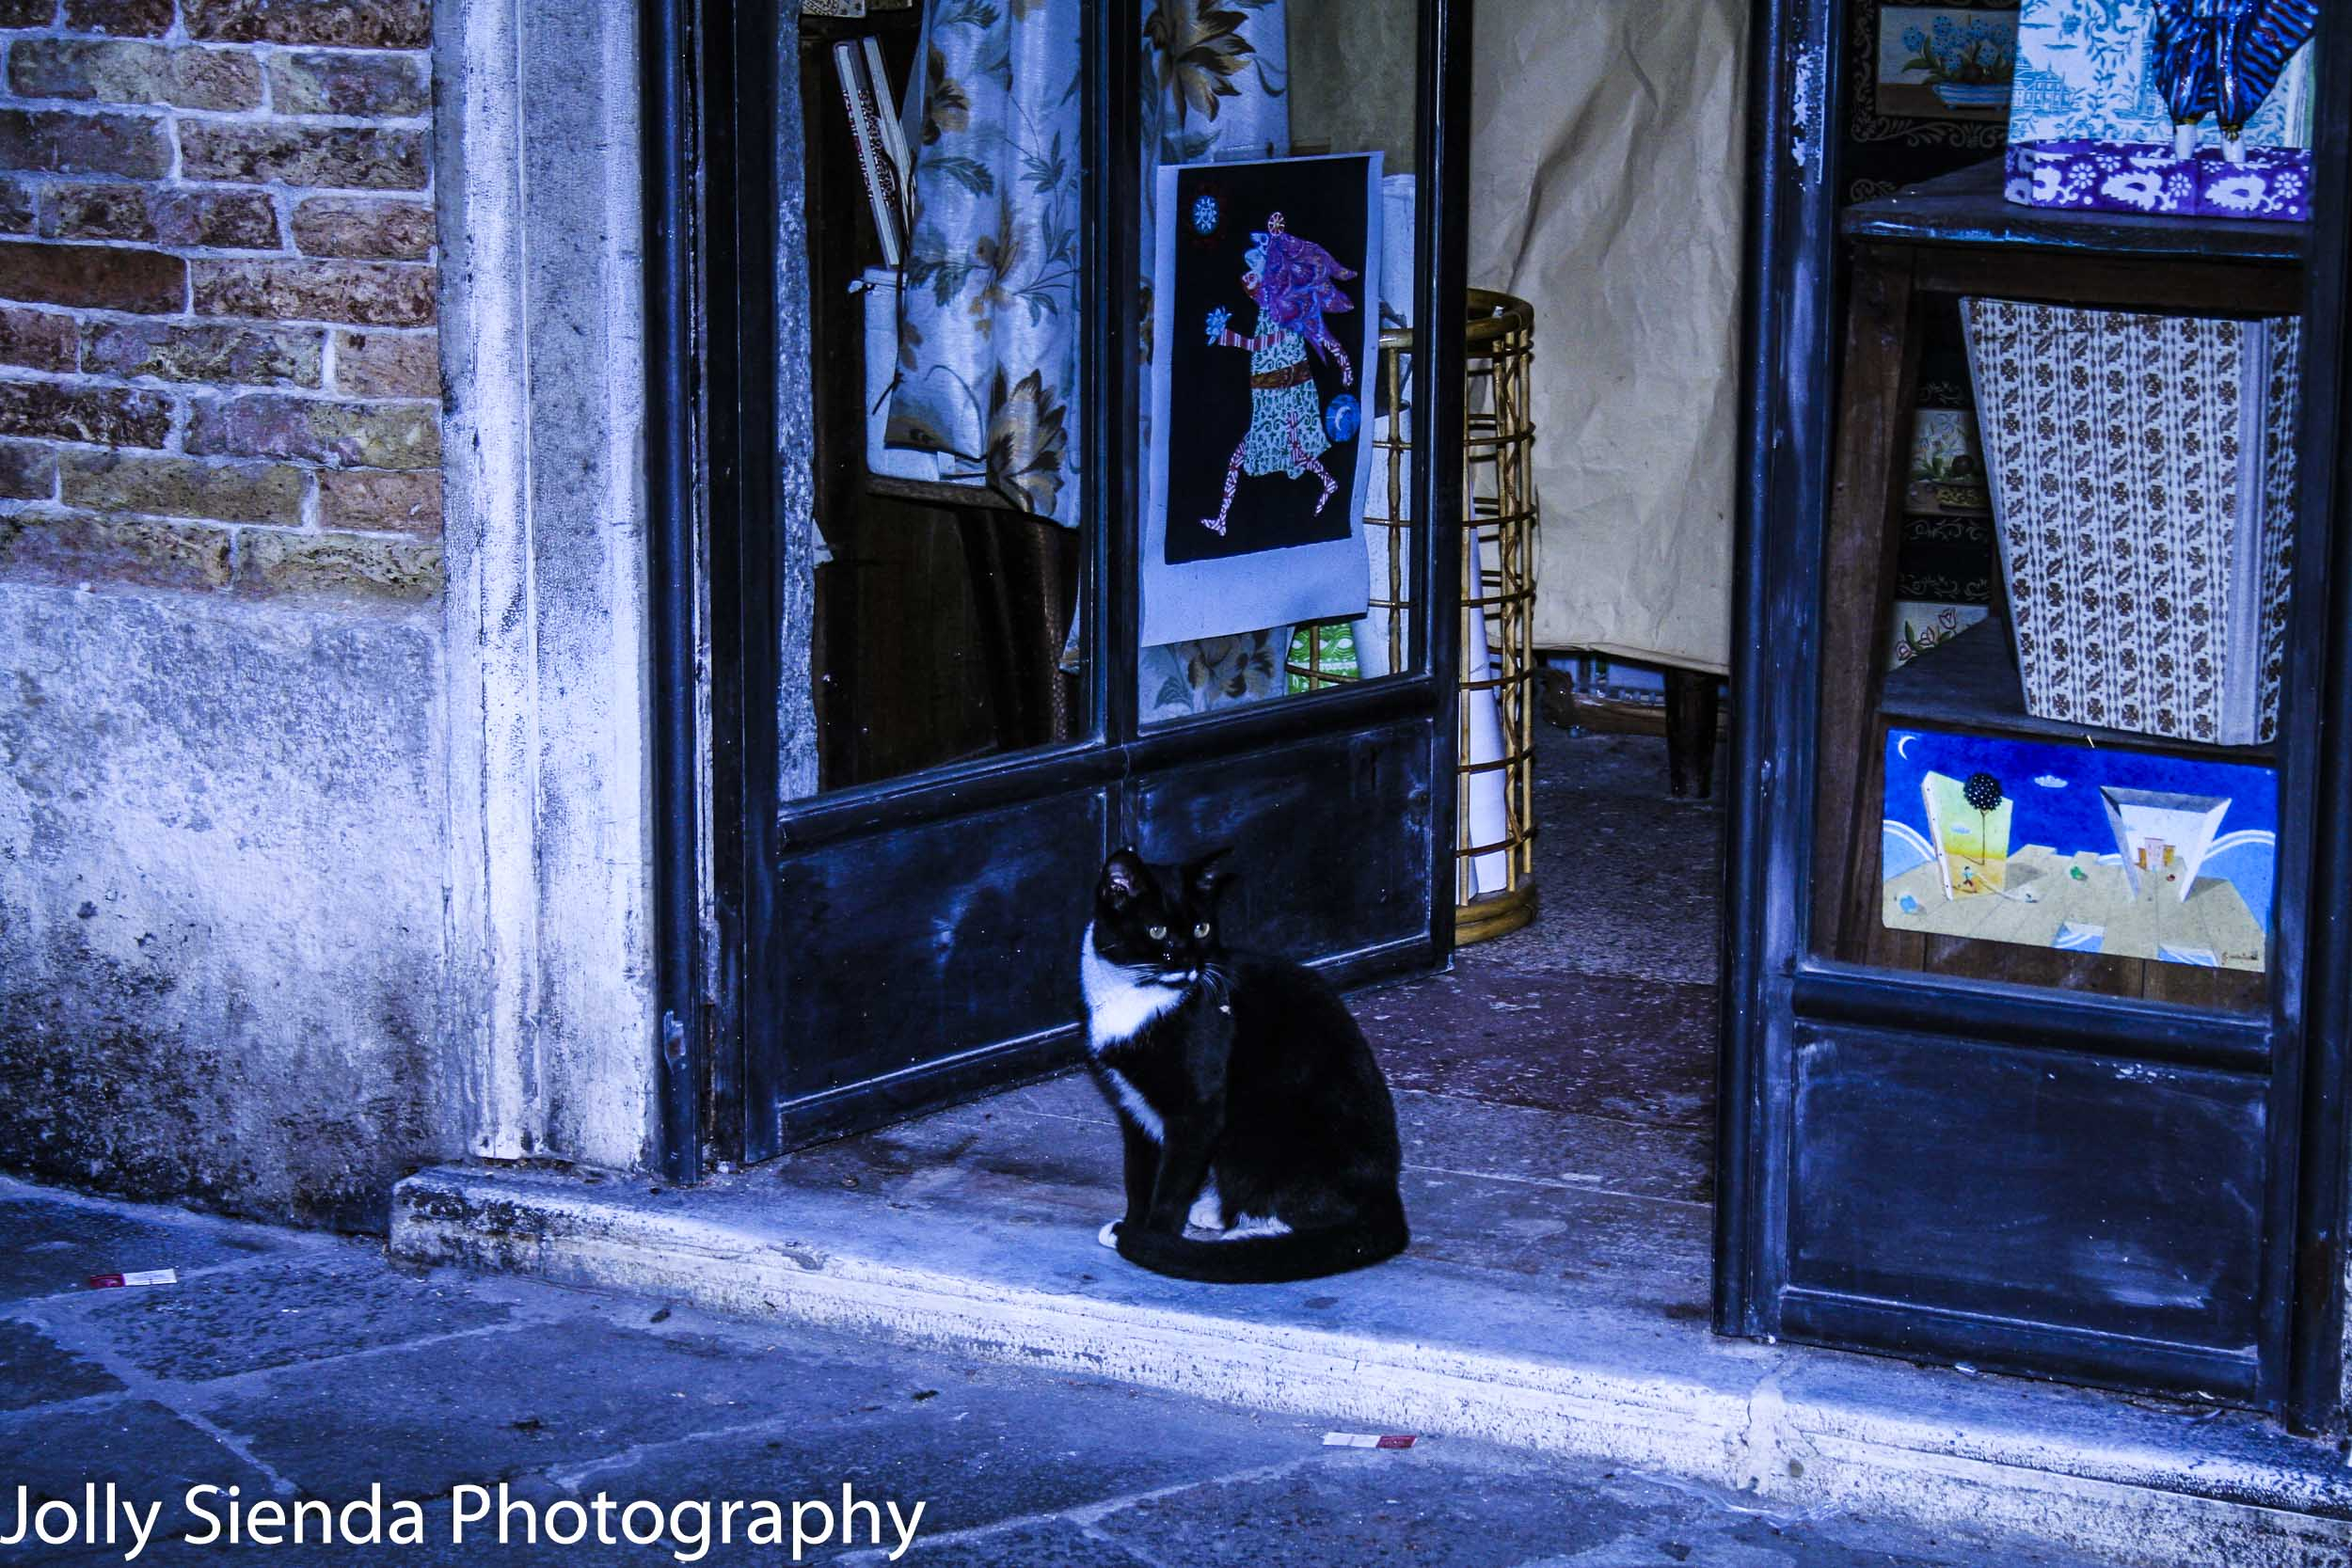 Venetian Black Tuxedo Shop Cat Takes in the View from the Open D